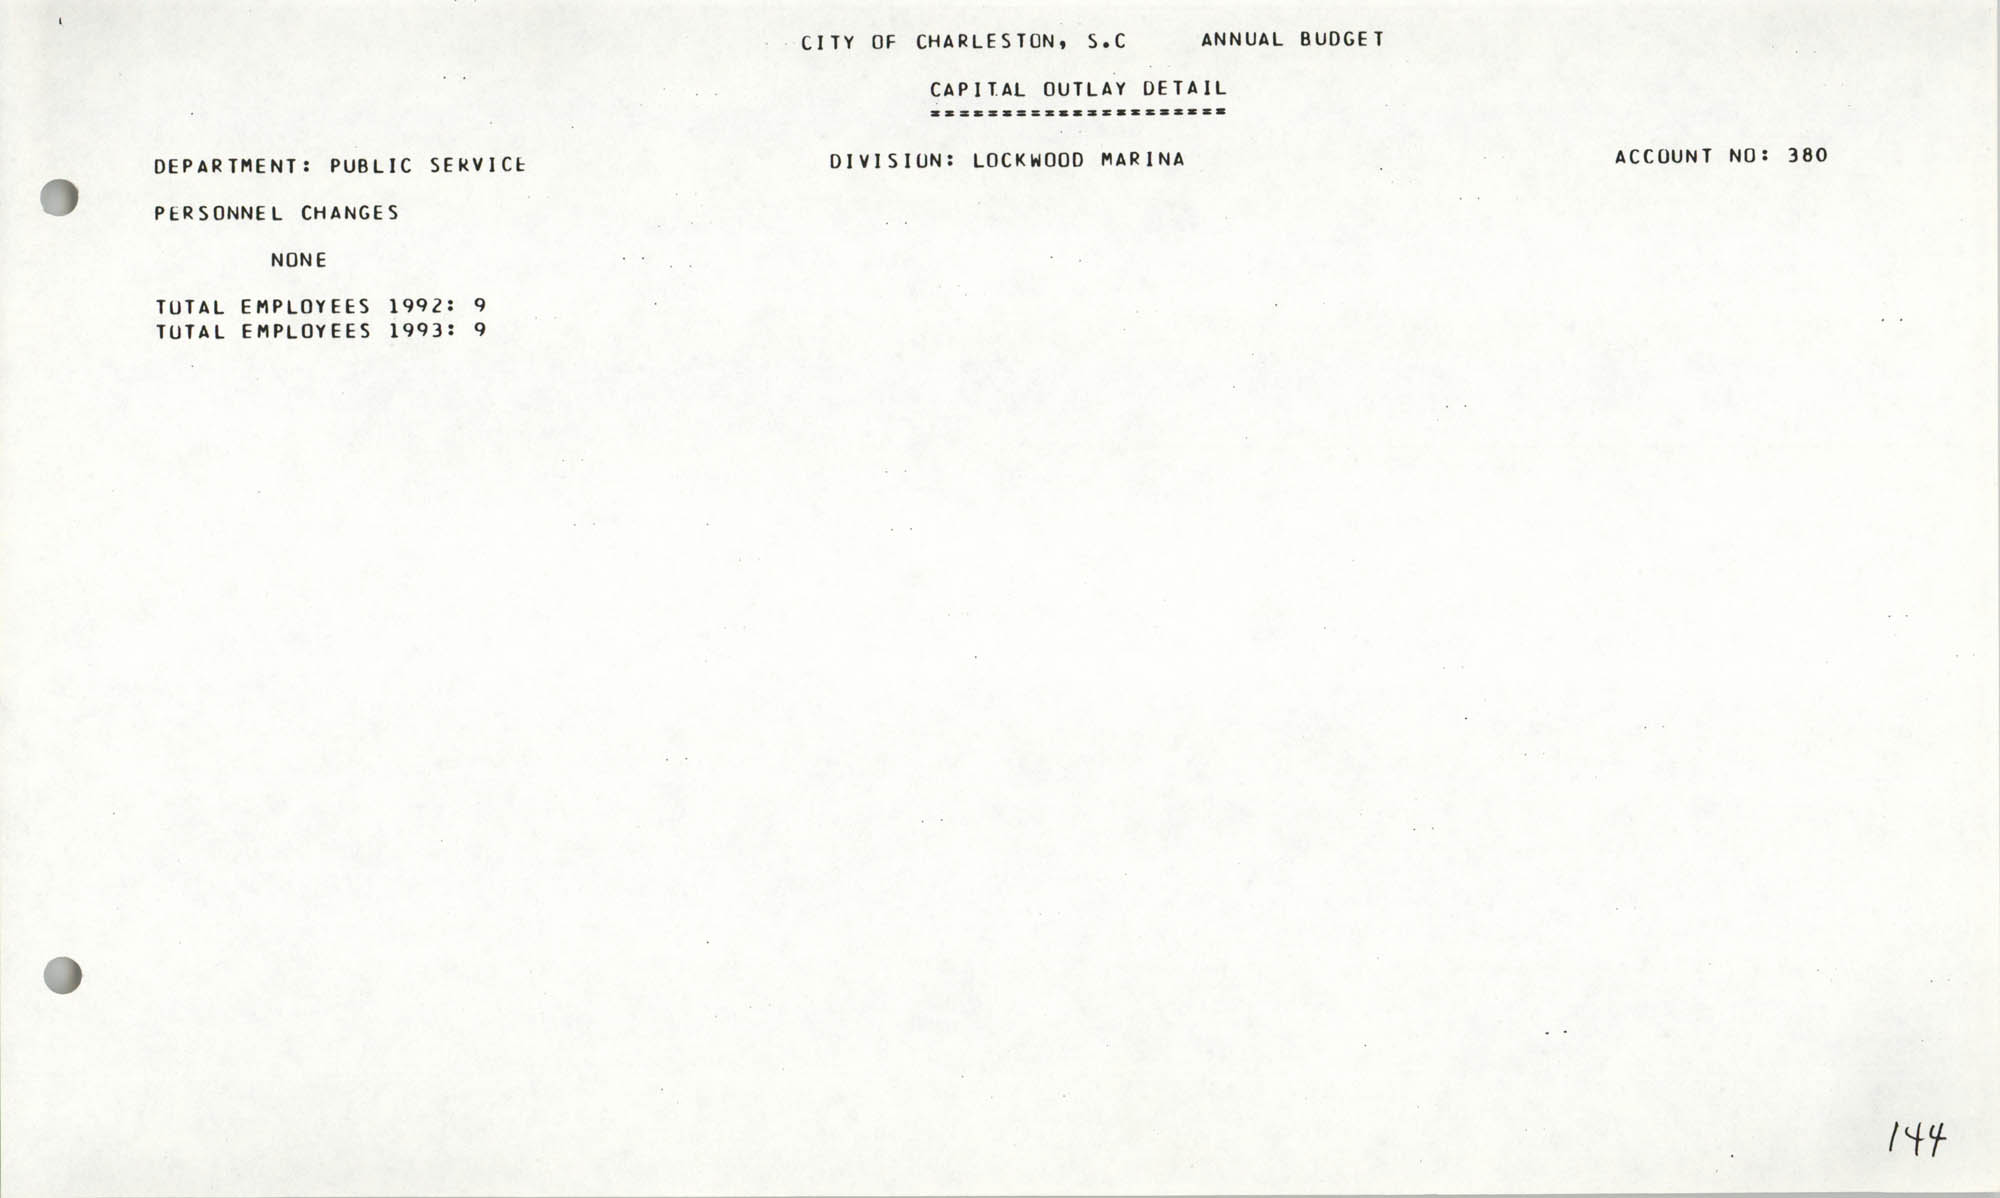 The City Council of Charleston, South Carolina, 1993 Budget, Page 144